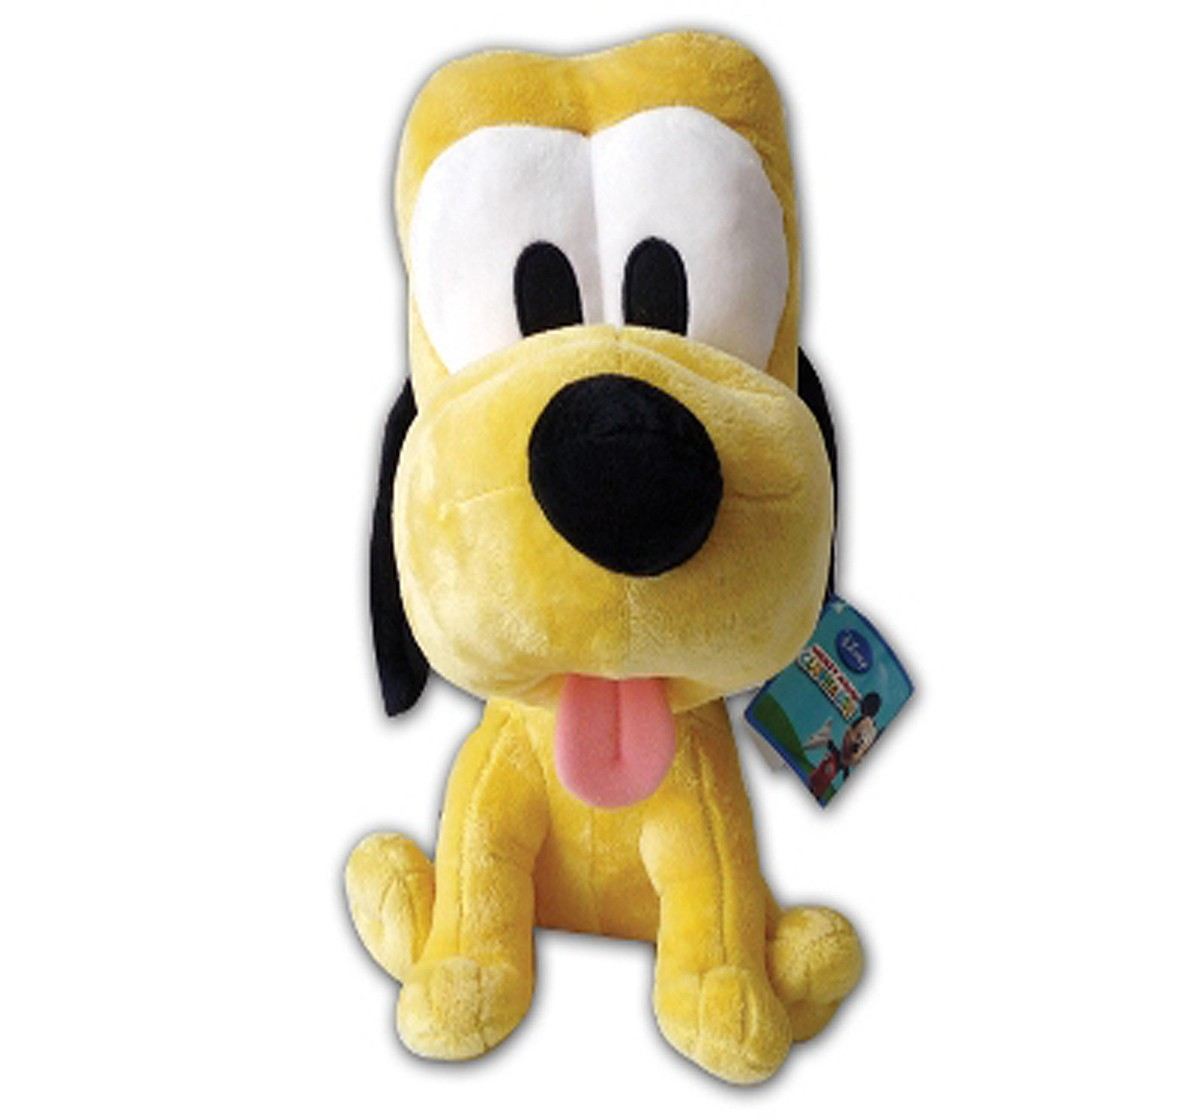 """Disney Pluto Big Head 10"""" Character Soft Toy for Kids age 1Y+ (Yellow)"""